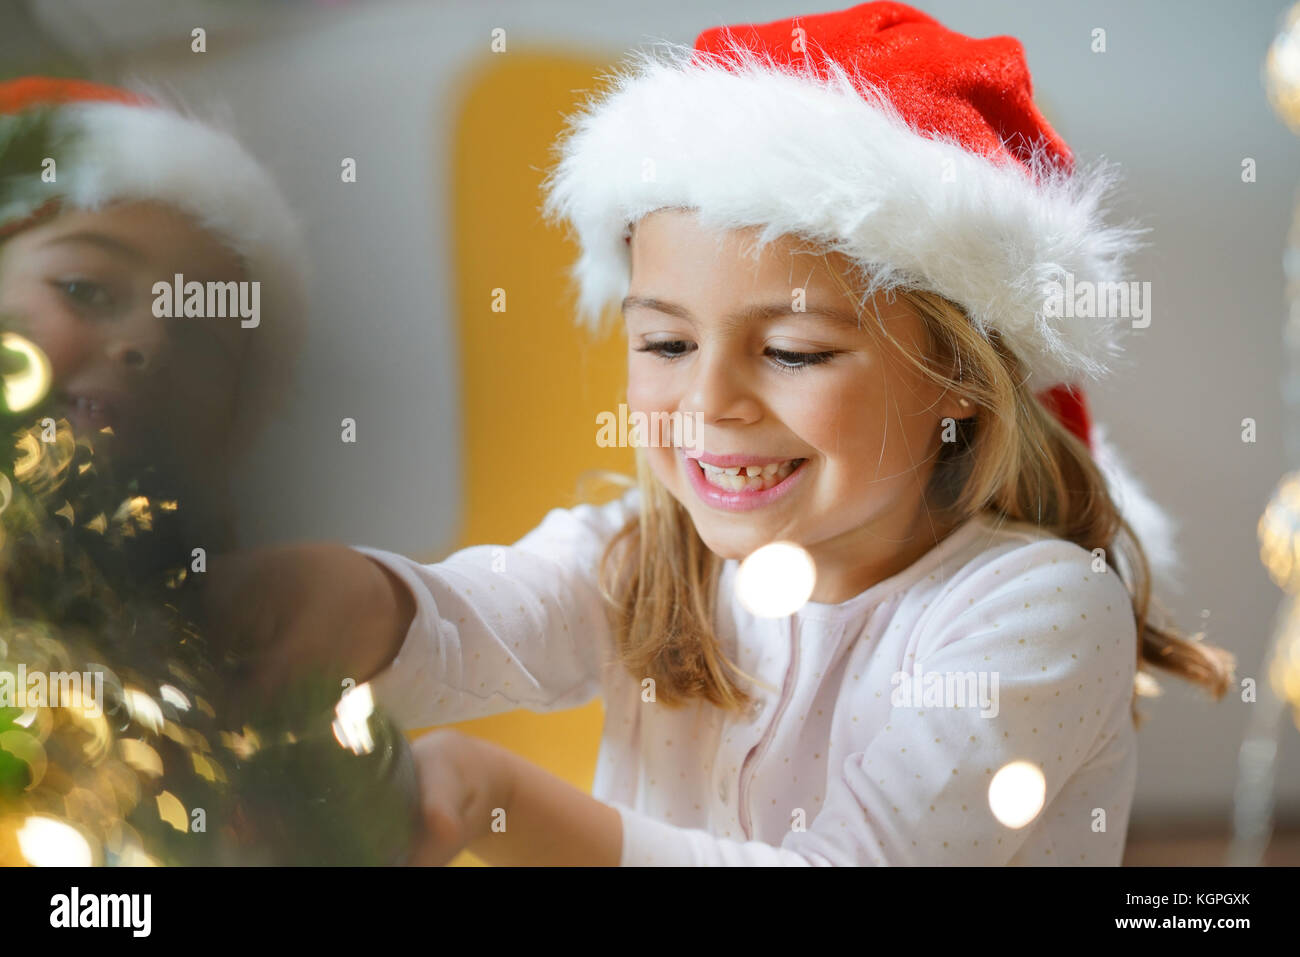 Portrait of cute little girl decorating Christmas tree - Stock Image